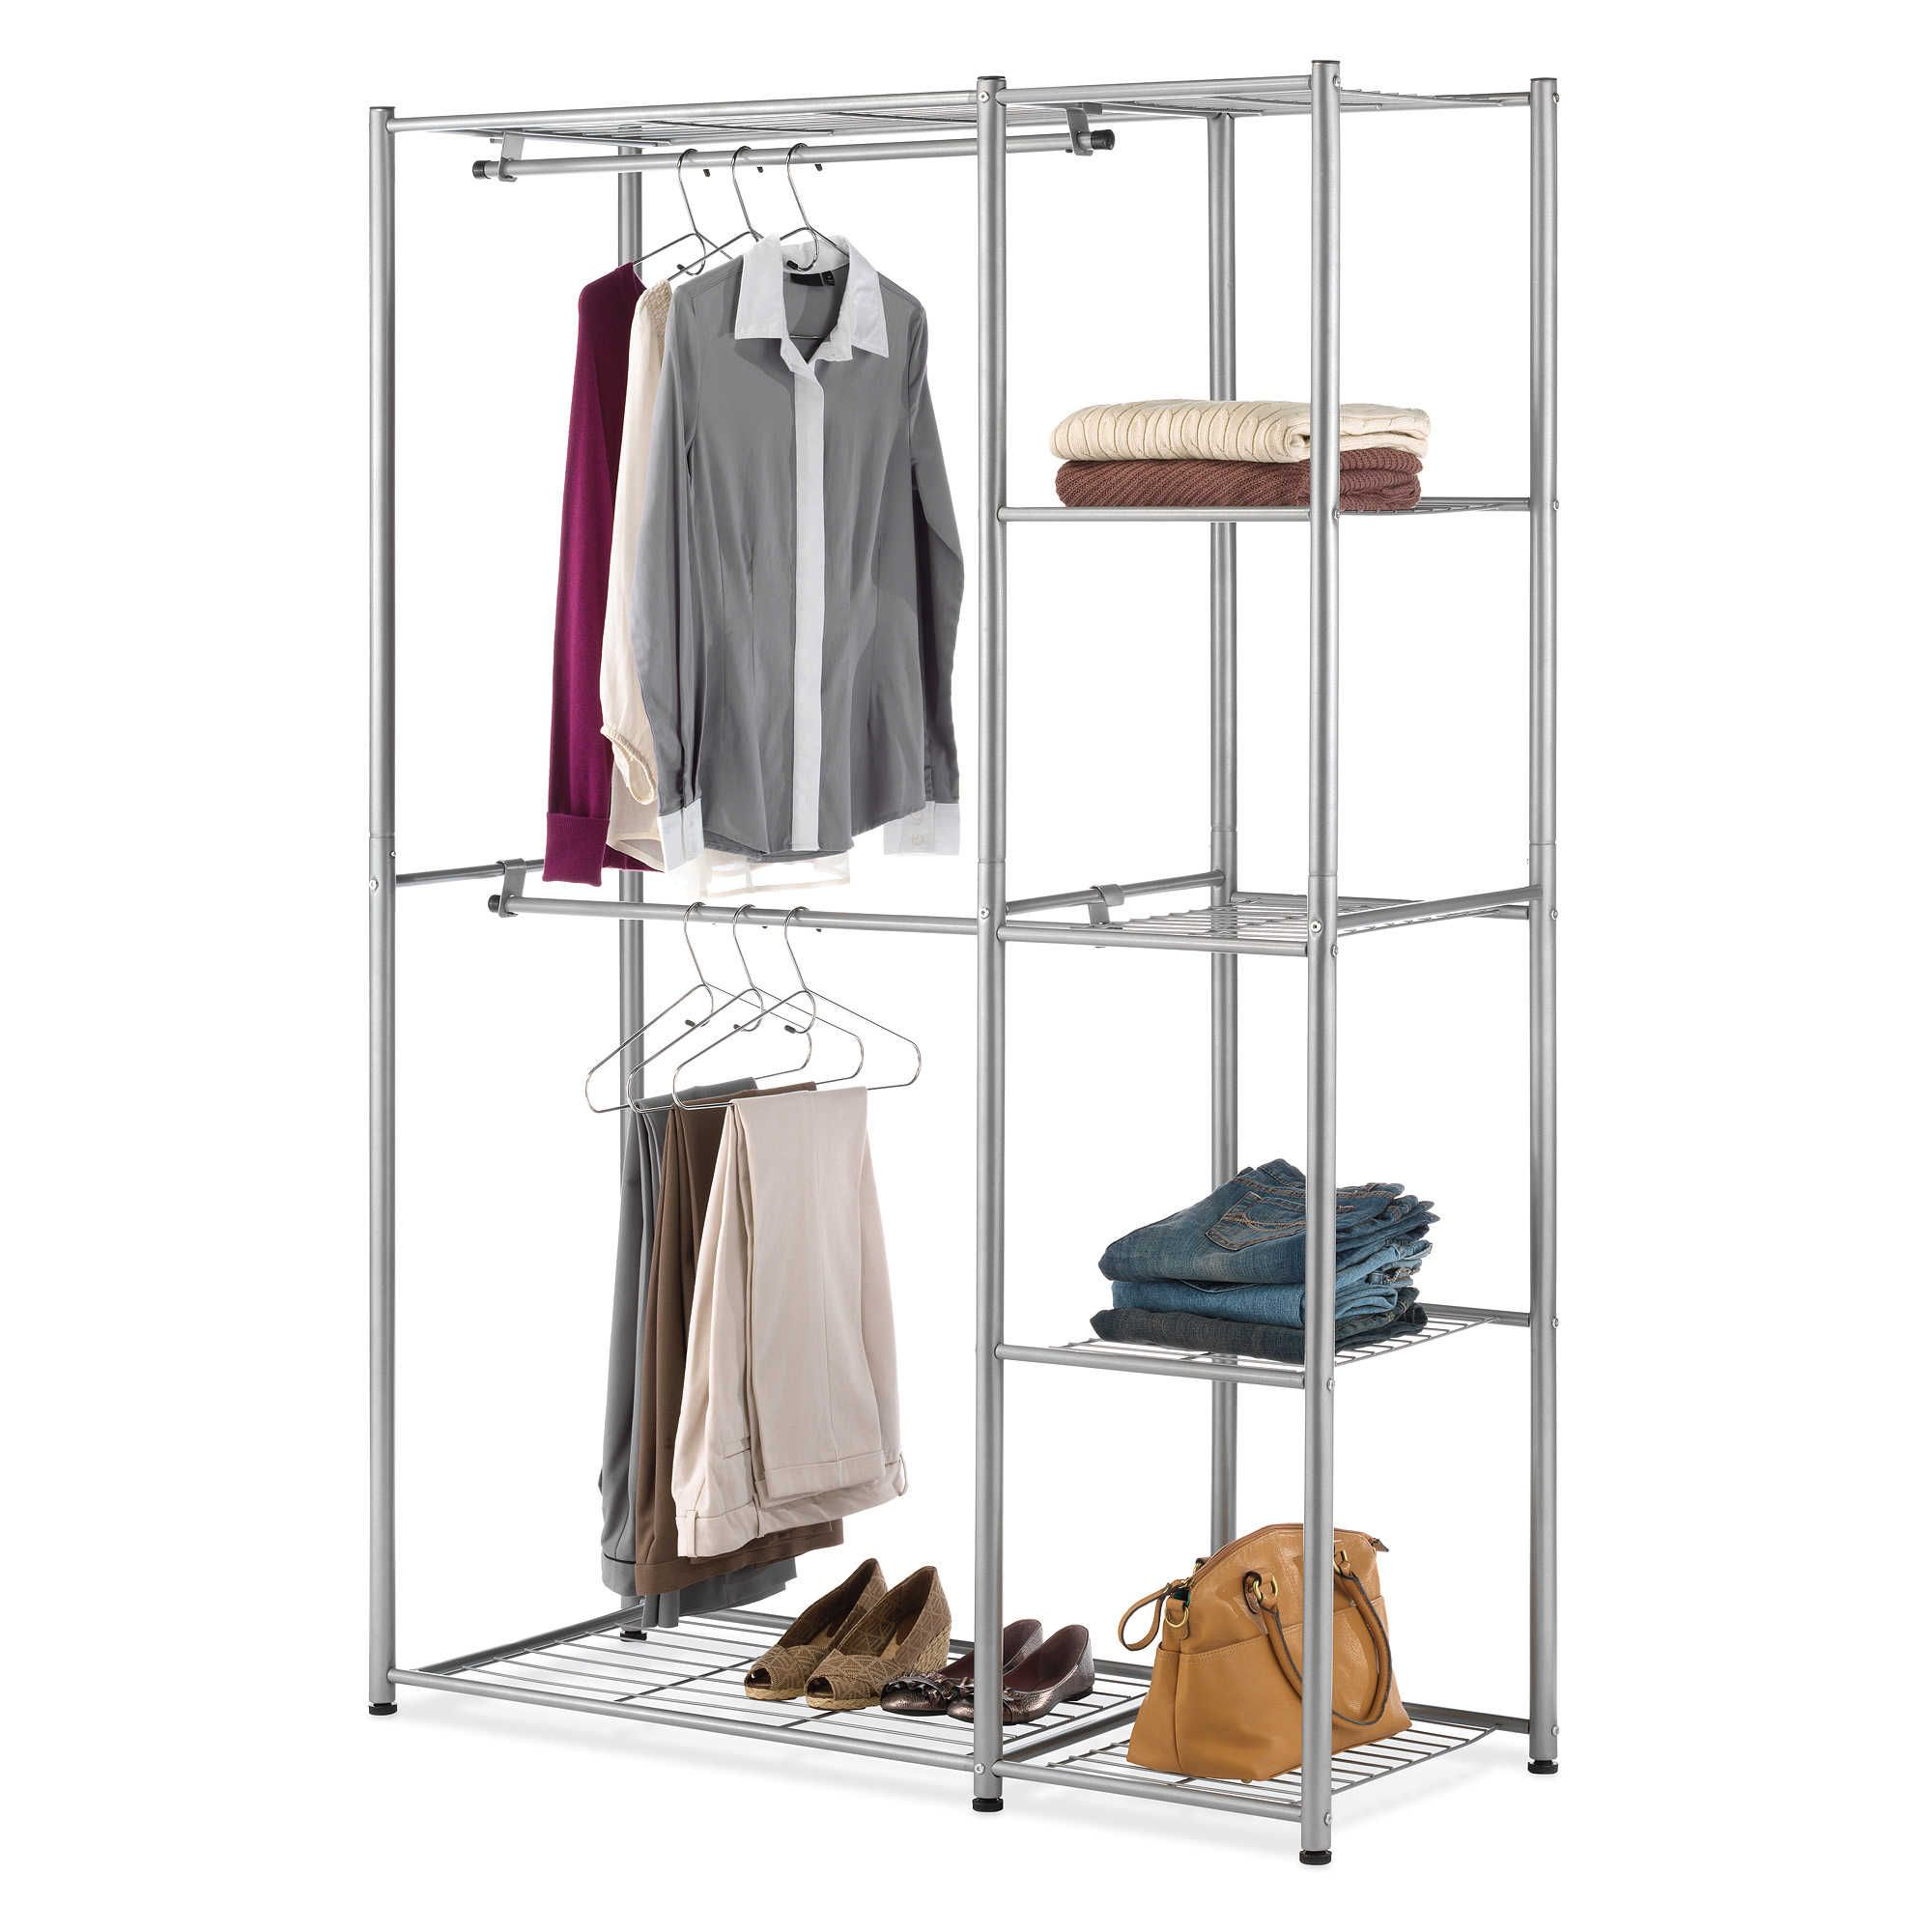 valet wardrobes heavy stand closets for portable hanging garment metal rail wardrobe movable boxes duty storage double rolling clothes professional furniture folding rack single closet